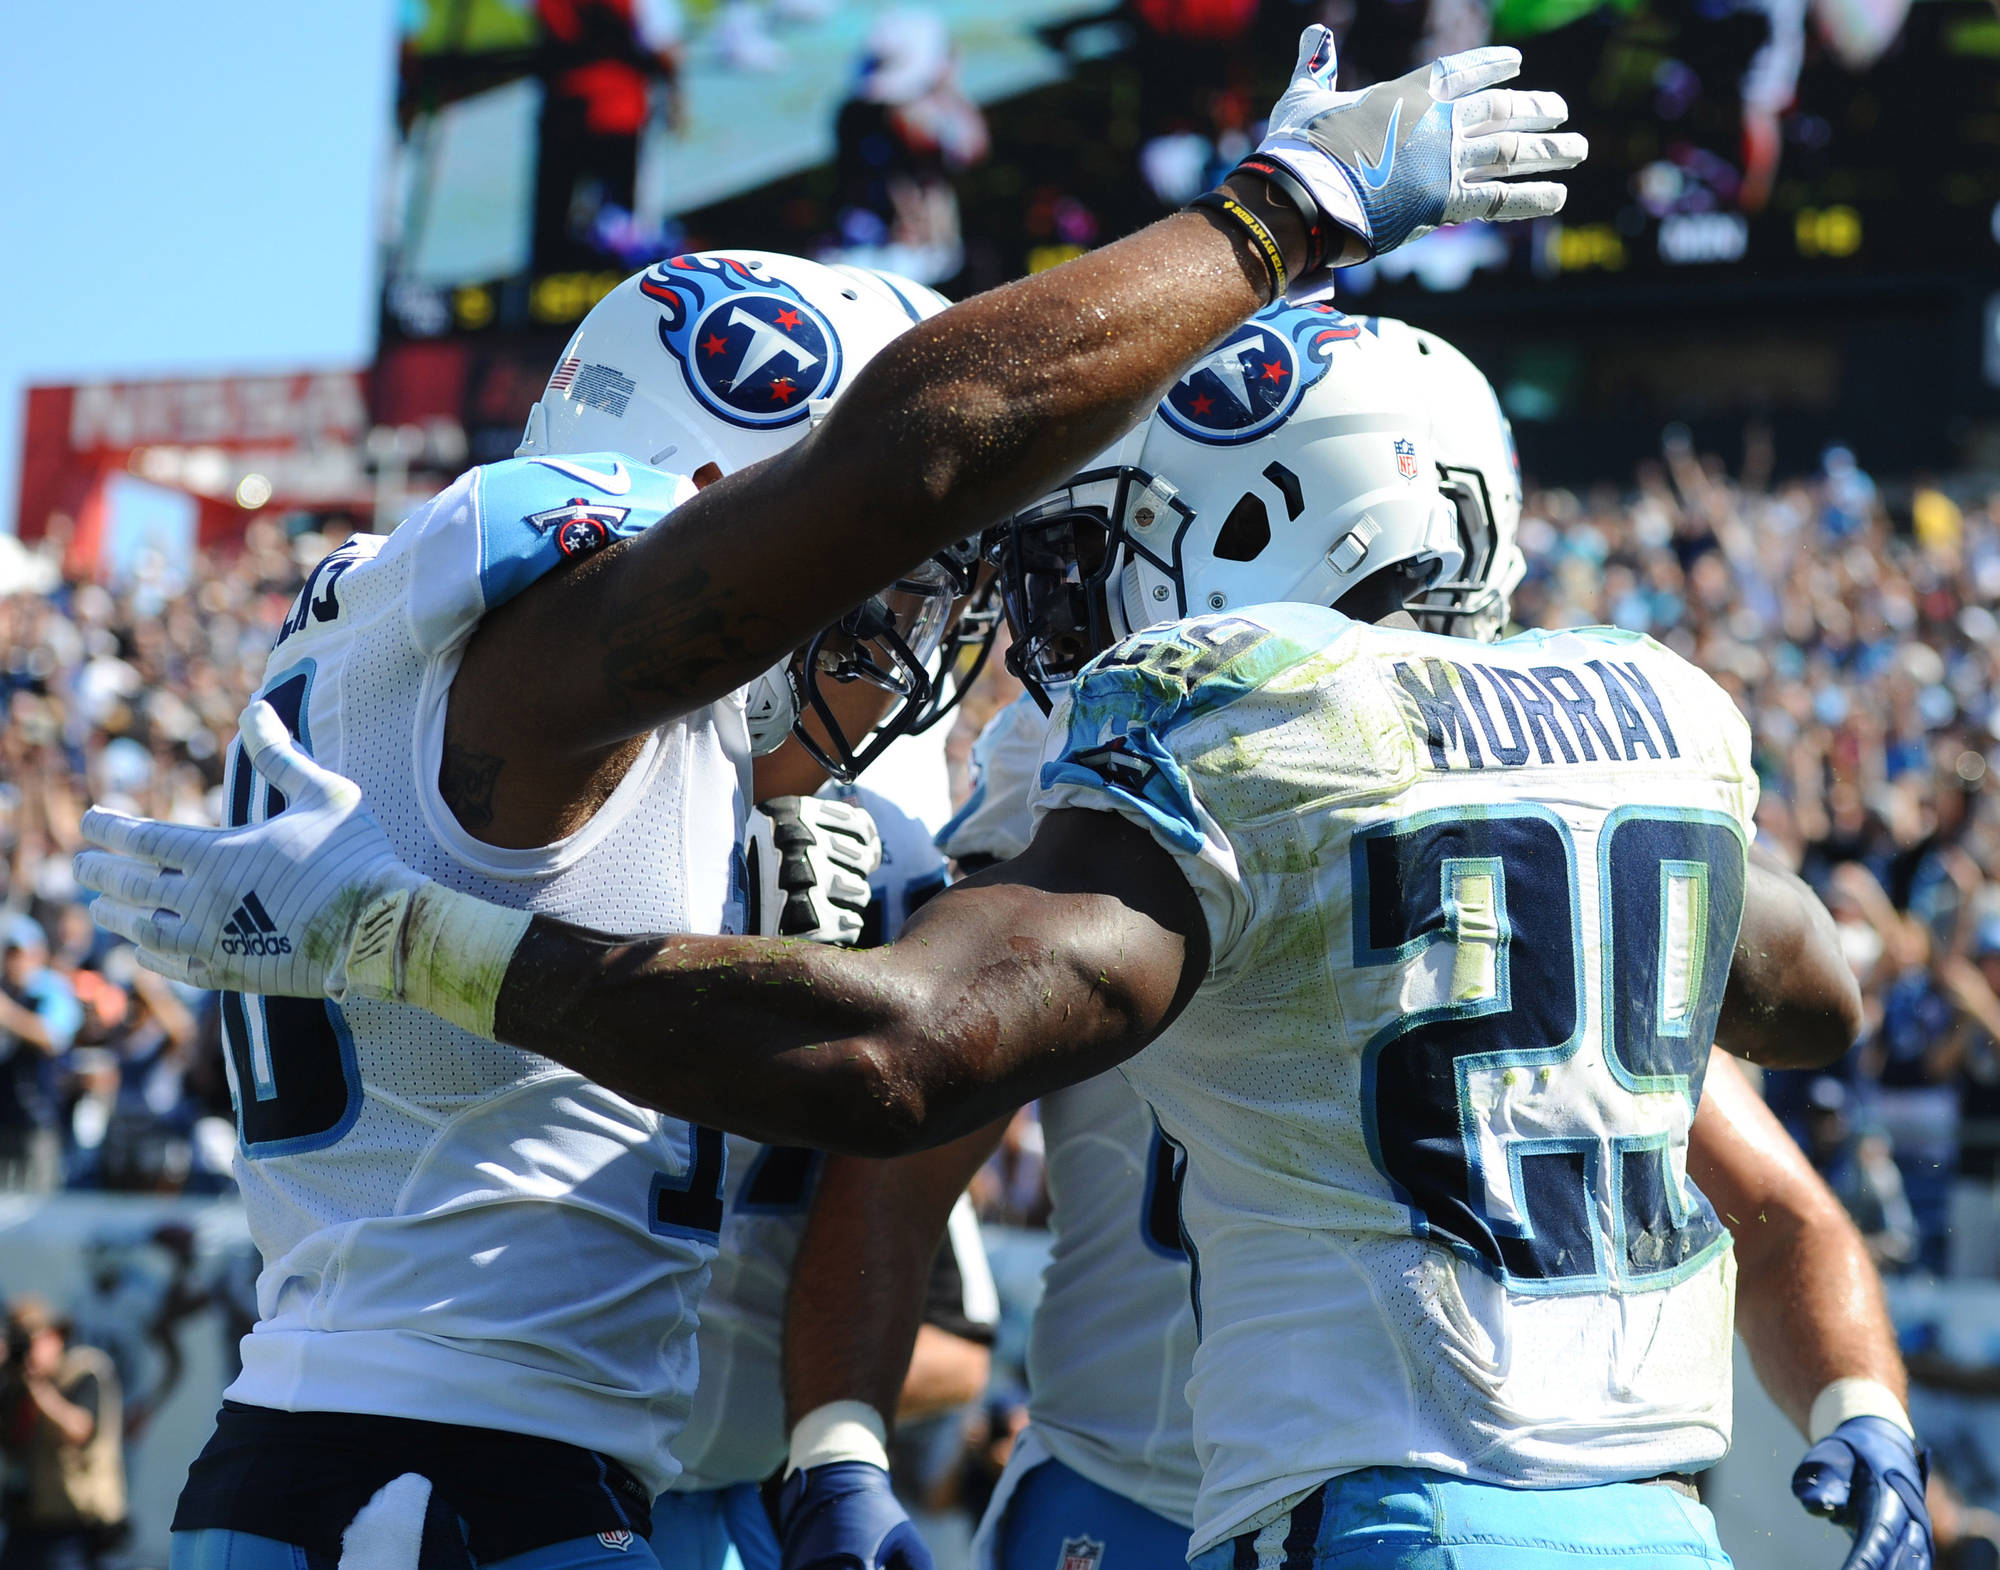 Game Preview: Titans Head to Houston in Week Four to Start Divisional Play